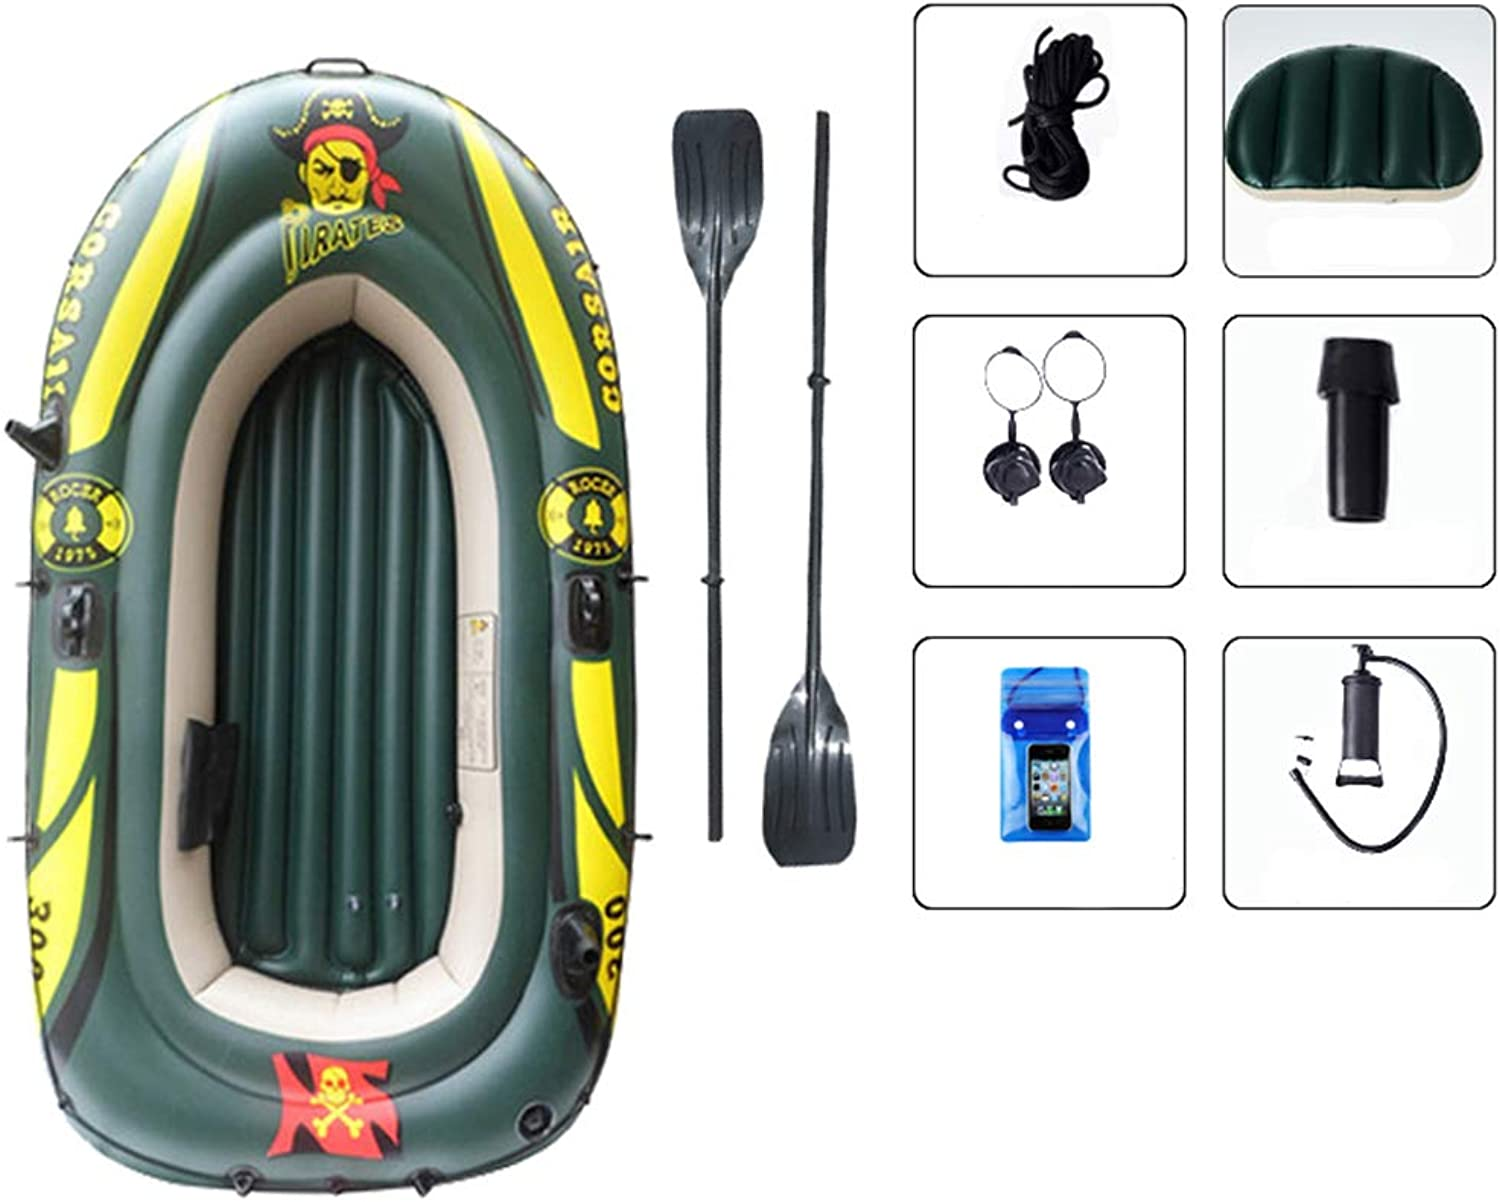 for Boat PVC Inflatable ADKINC Fishing Raft Recreation Water